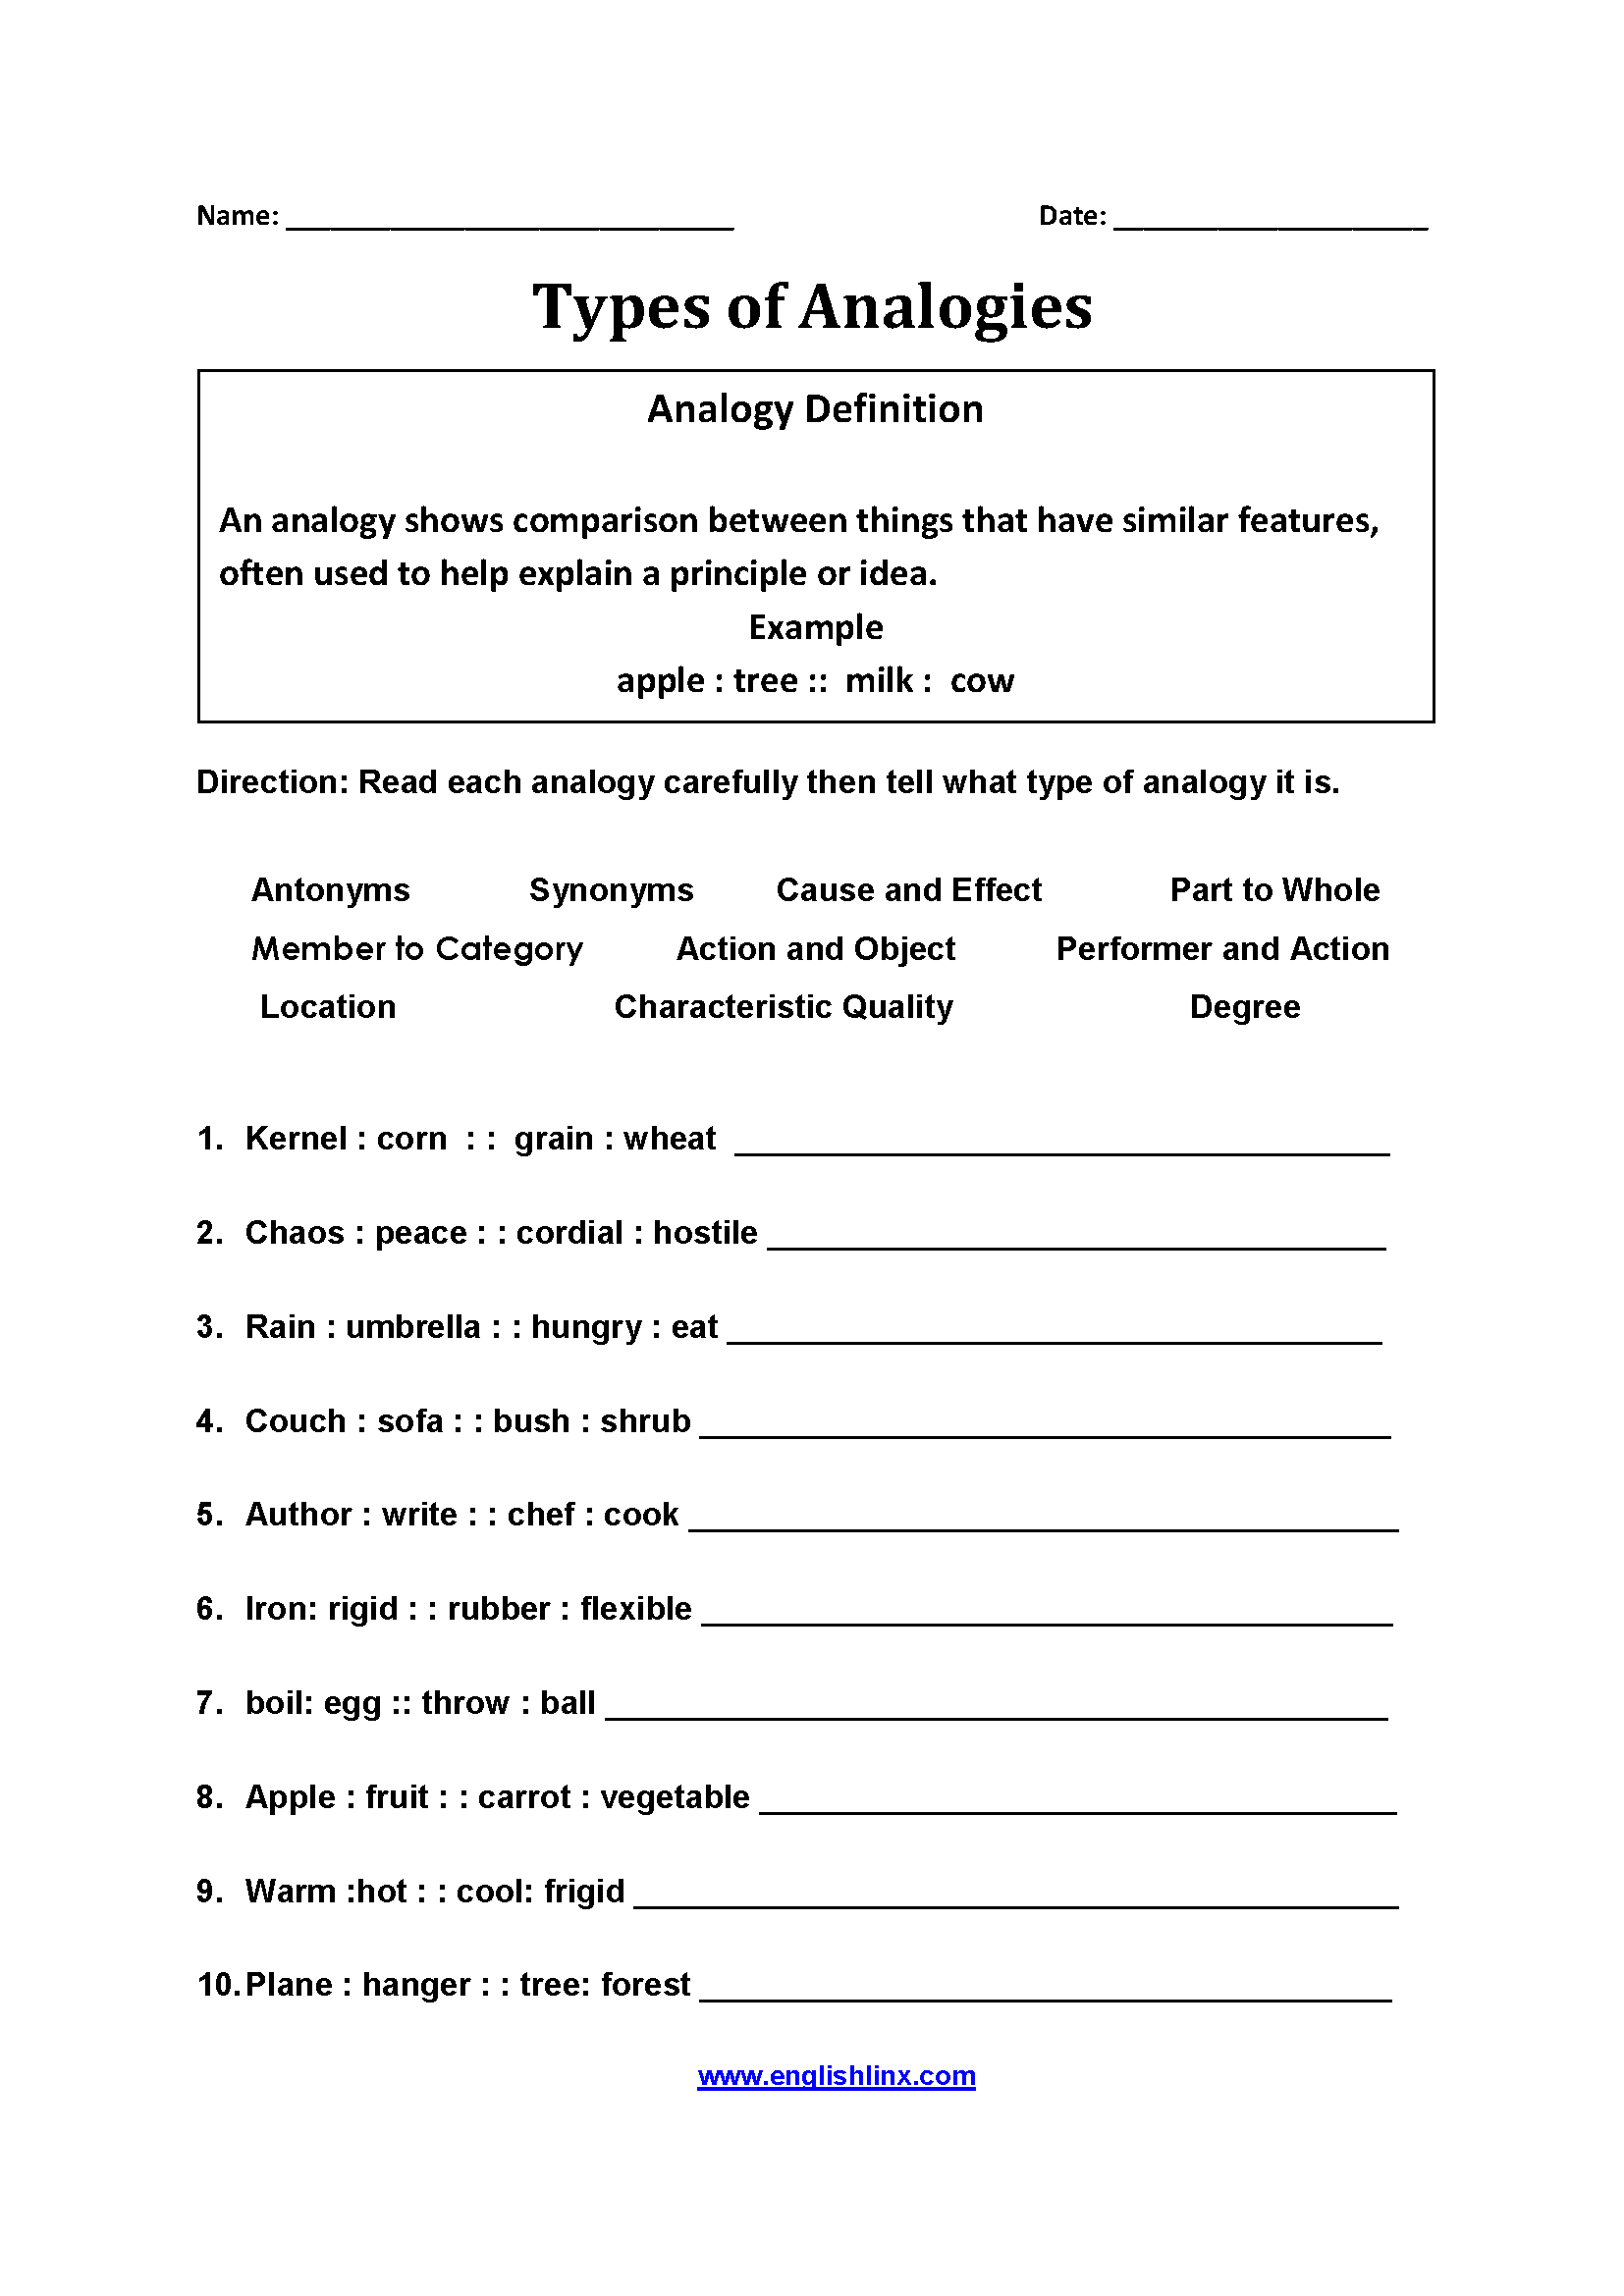 Types of Analogy Worksheets